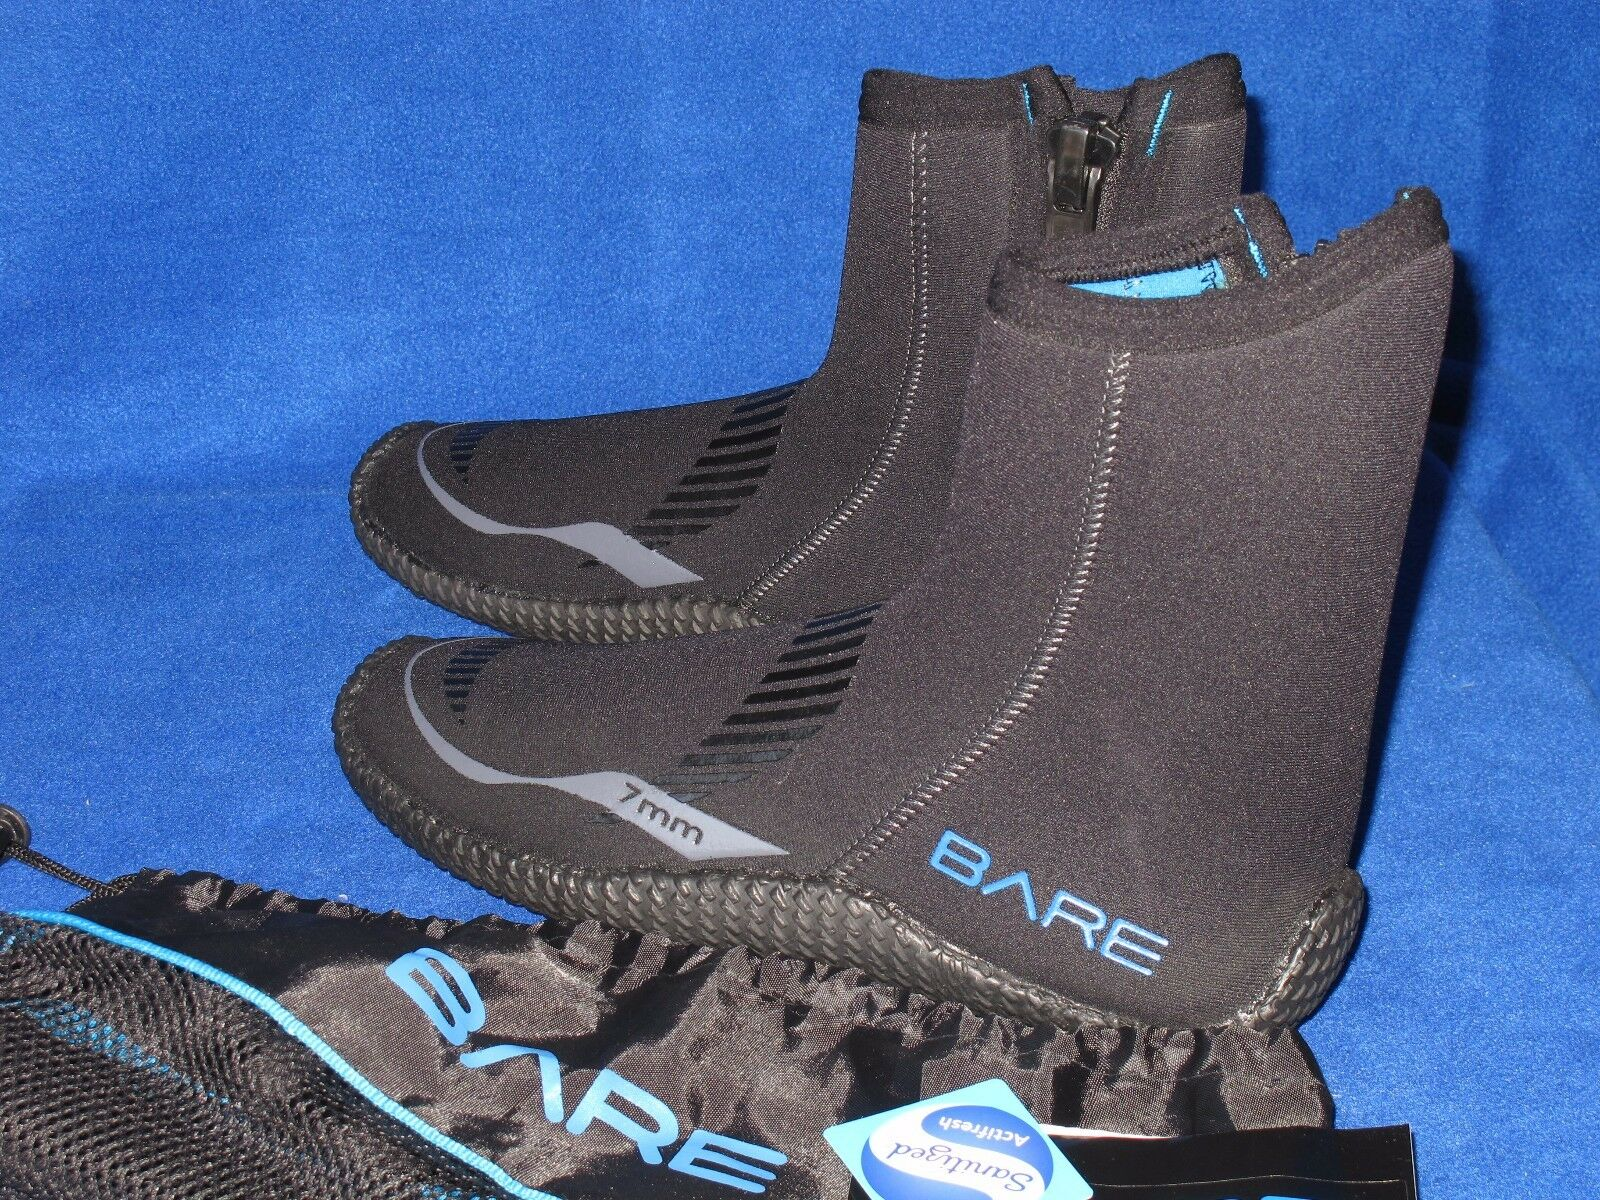 Bare Sport 7mm water sport boot Scuba Diving and Snorkeling Booties